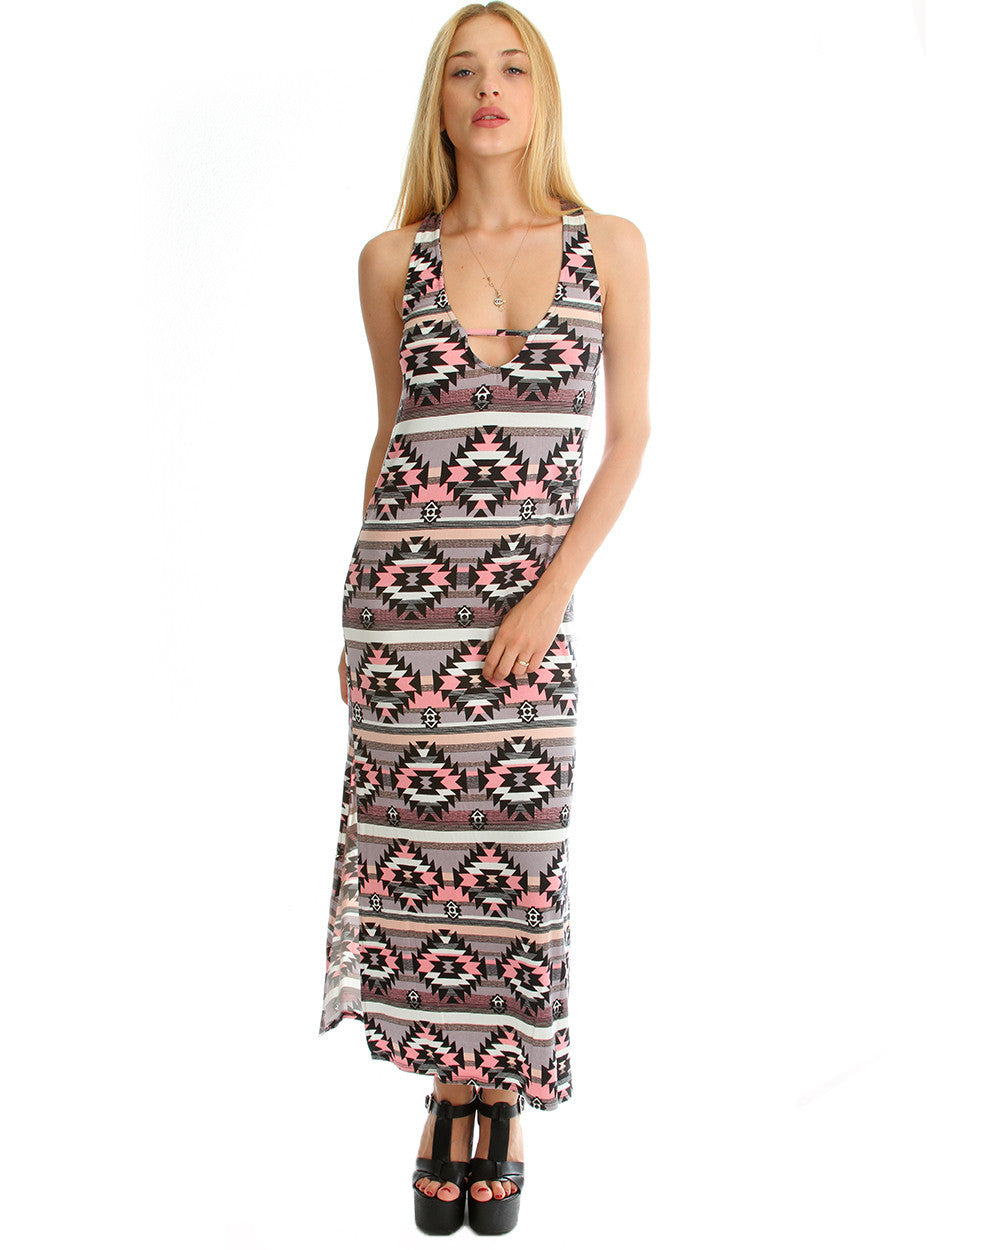 Tribal Print Maxi Dress with leg Slit in Pink & Grey